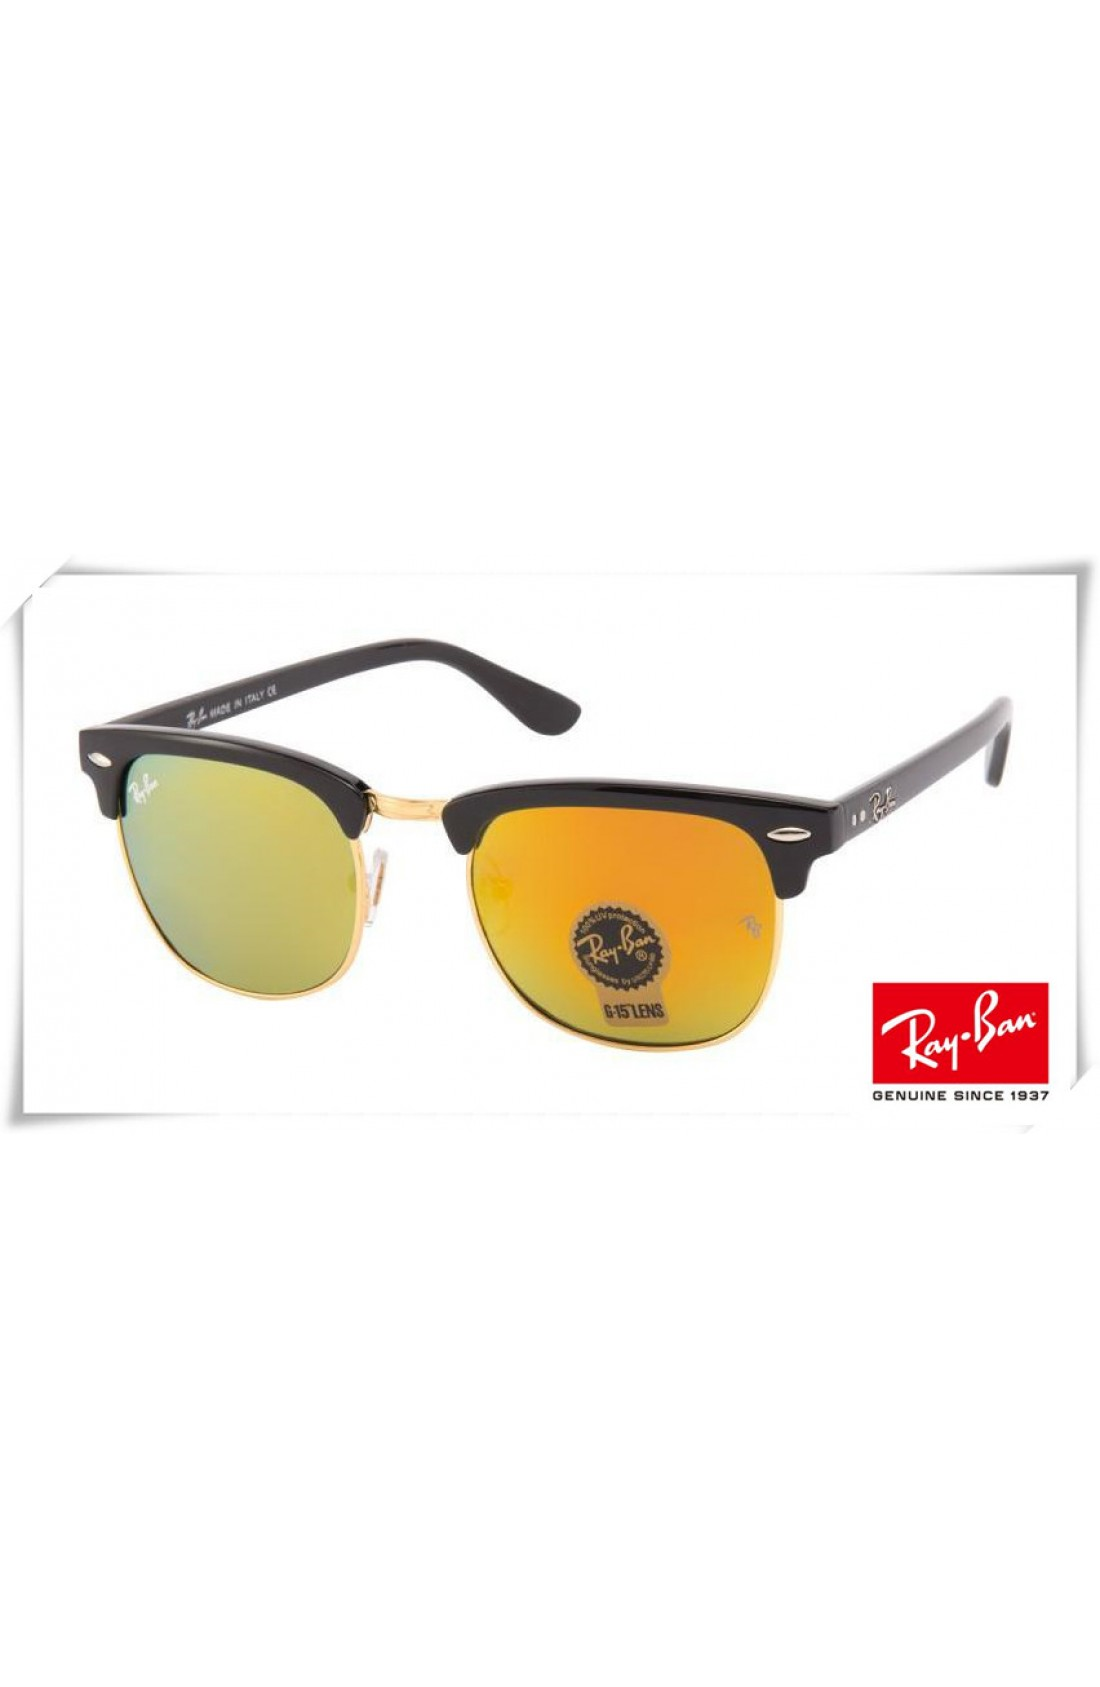 54279fcb13904 Replica Ray Ban RB3016 Classic Clubmaster Sunglasses Black Frame ...